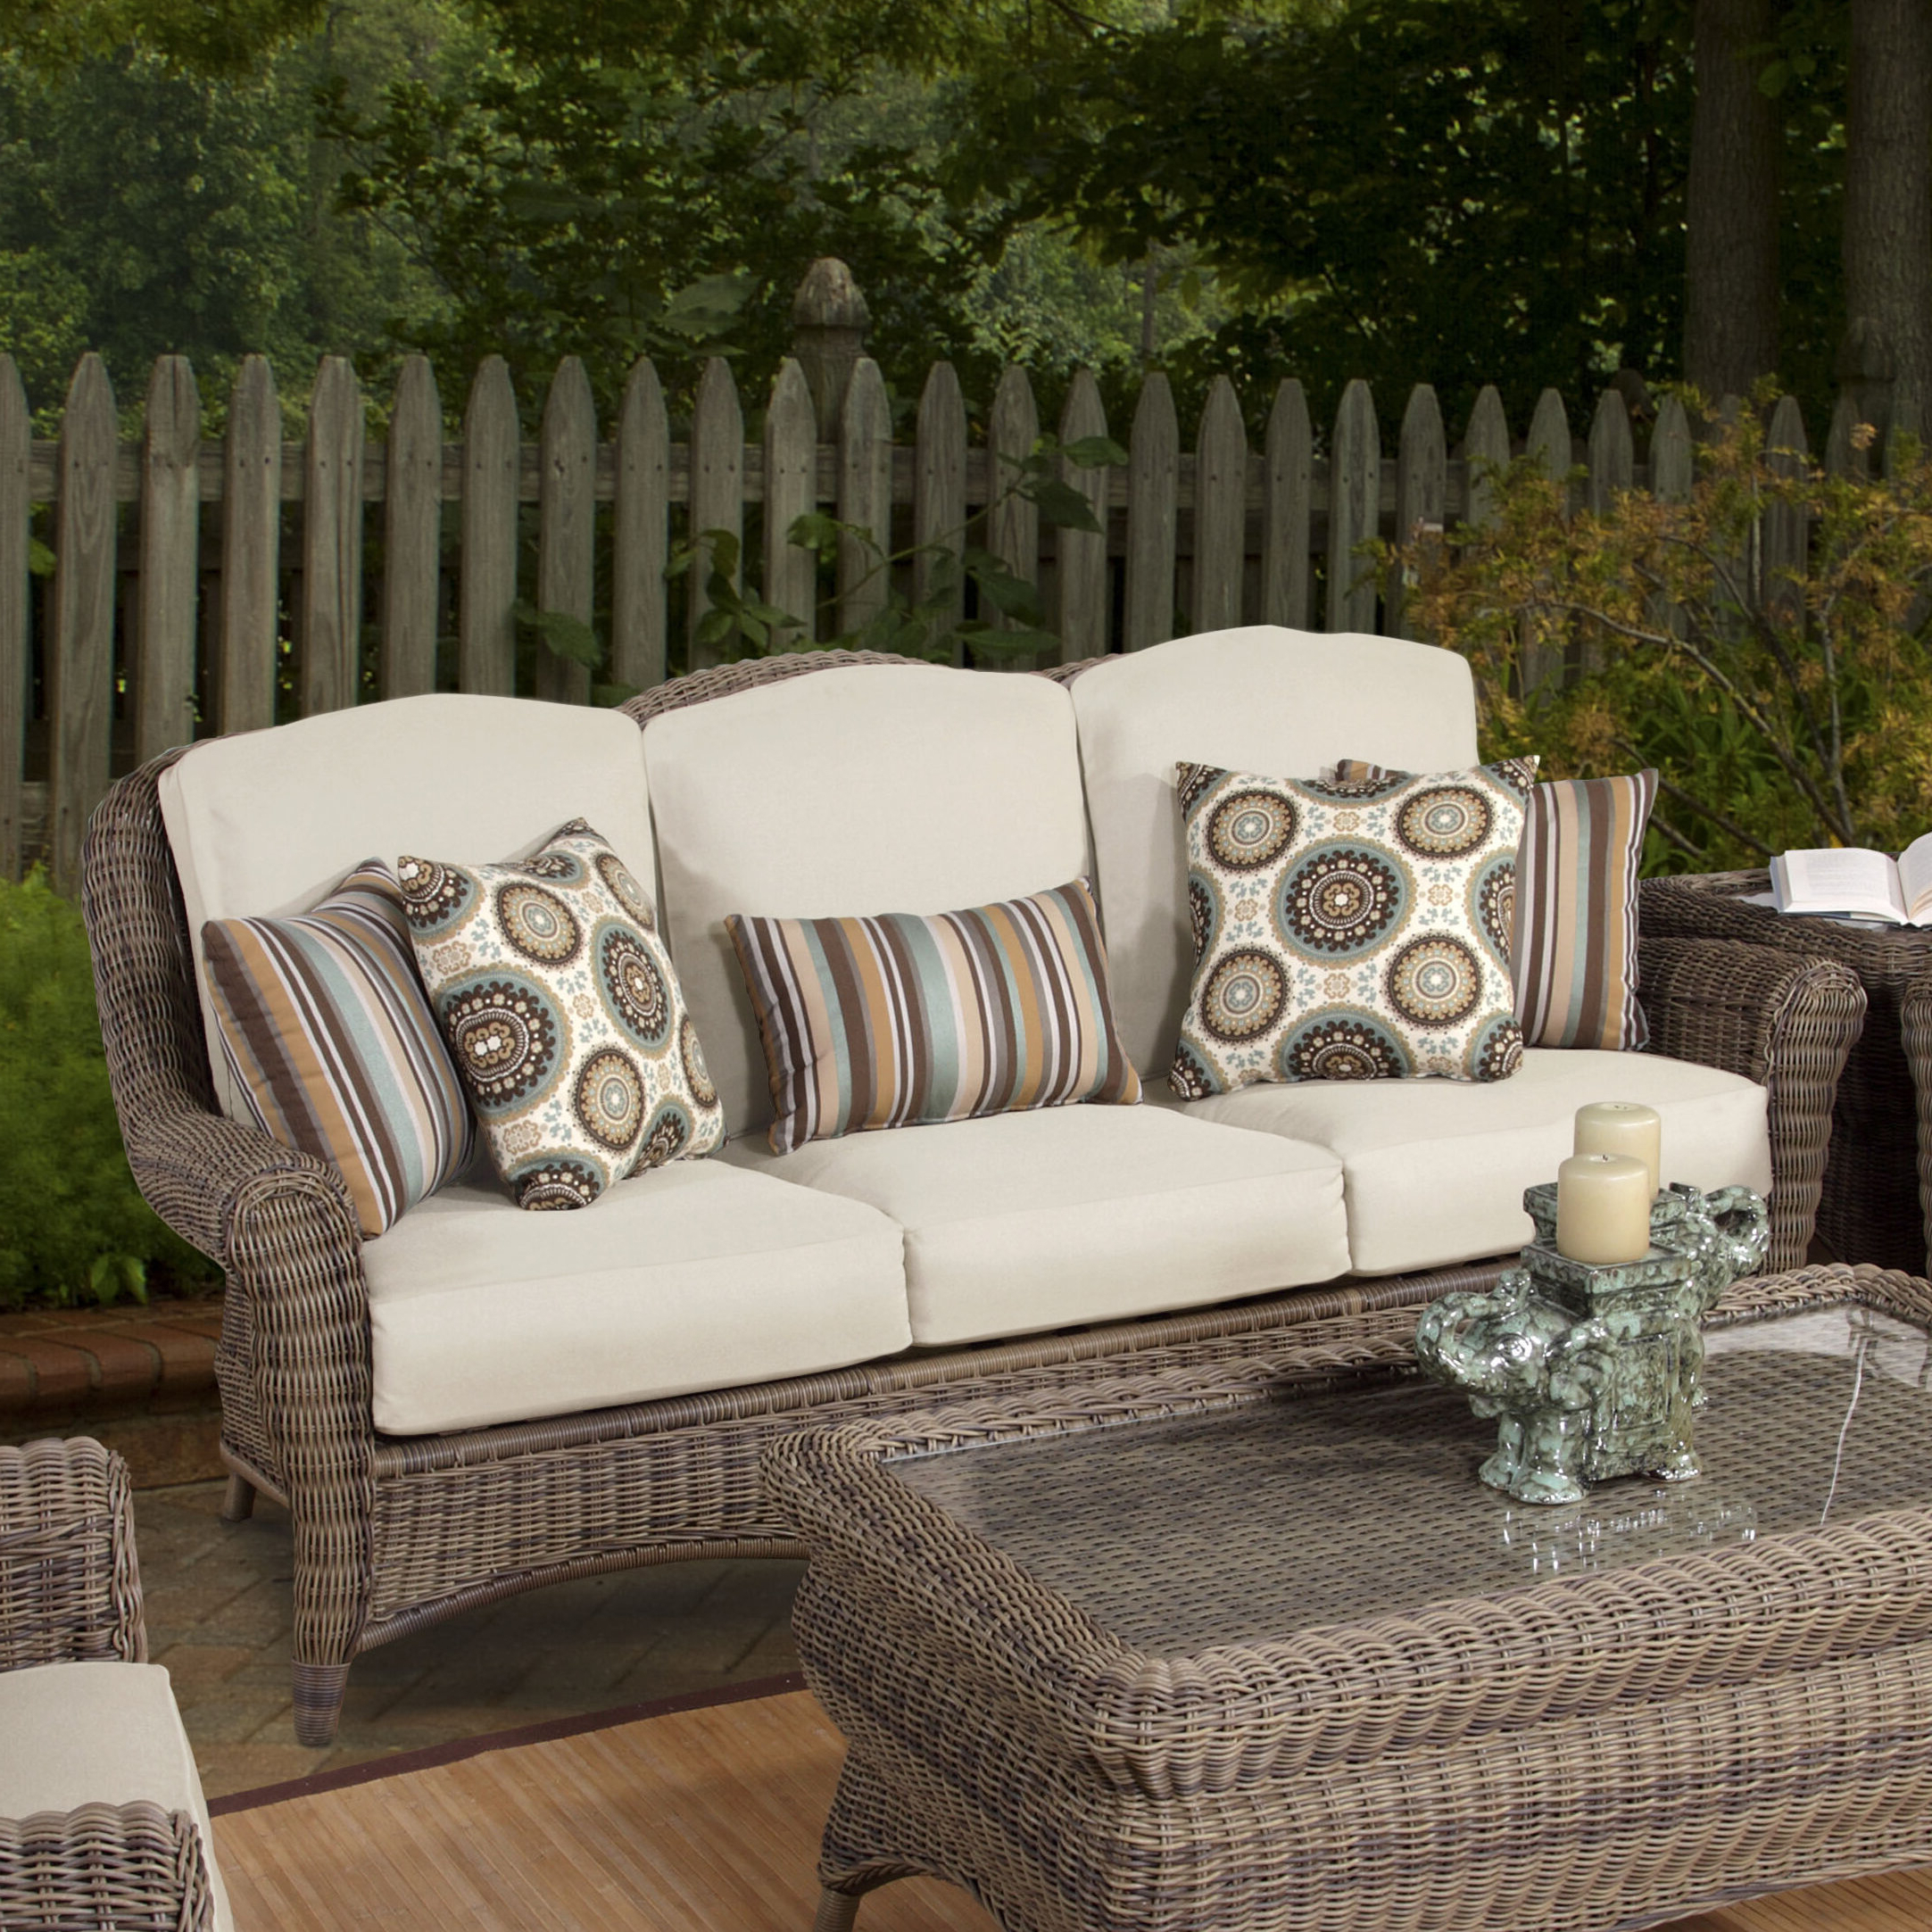 Famous Fannin Patio Sofas With Cushions In Provence Sofa With Cushions (View 15 of 25)